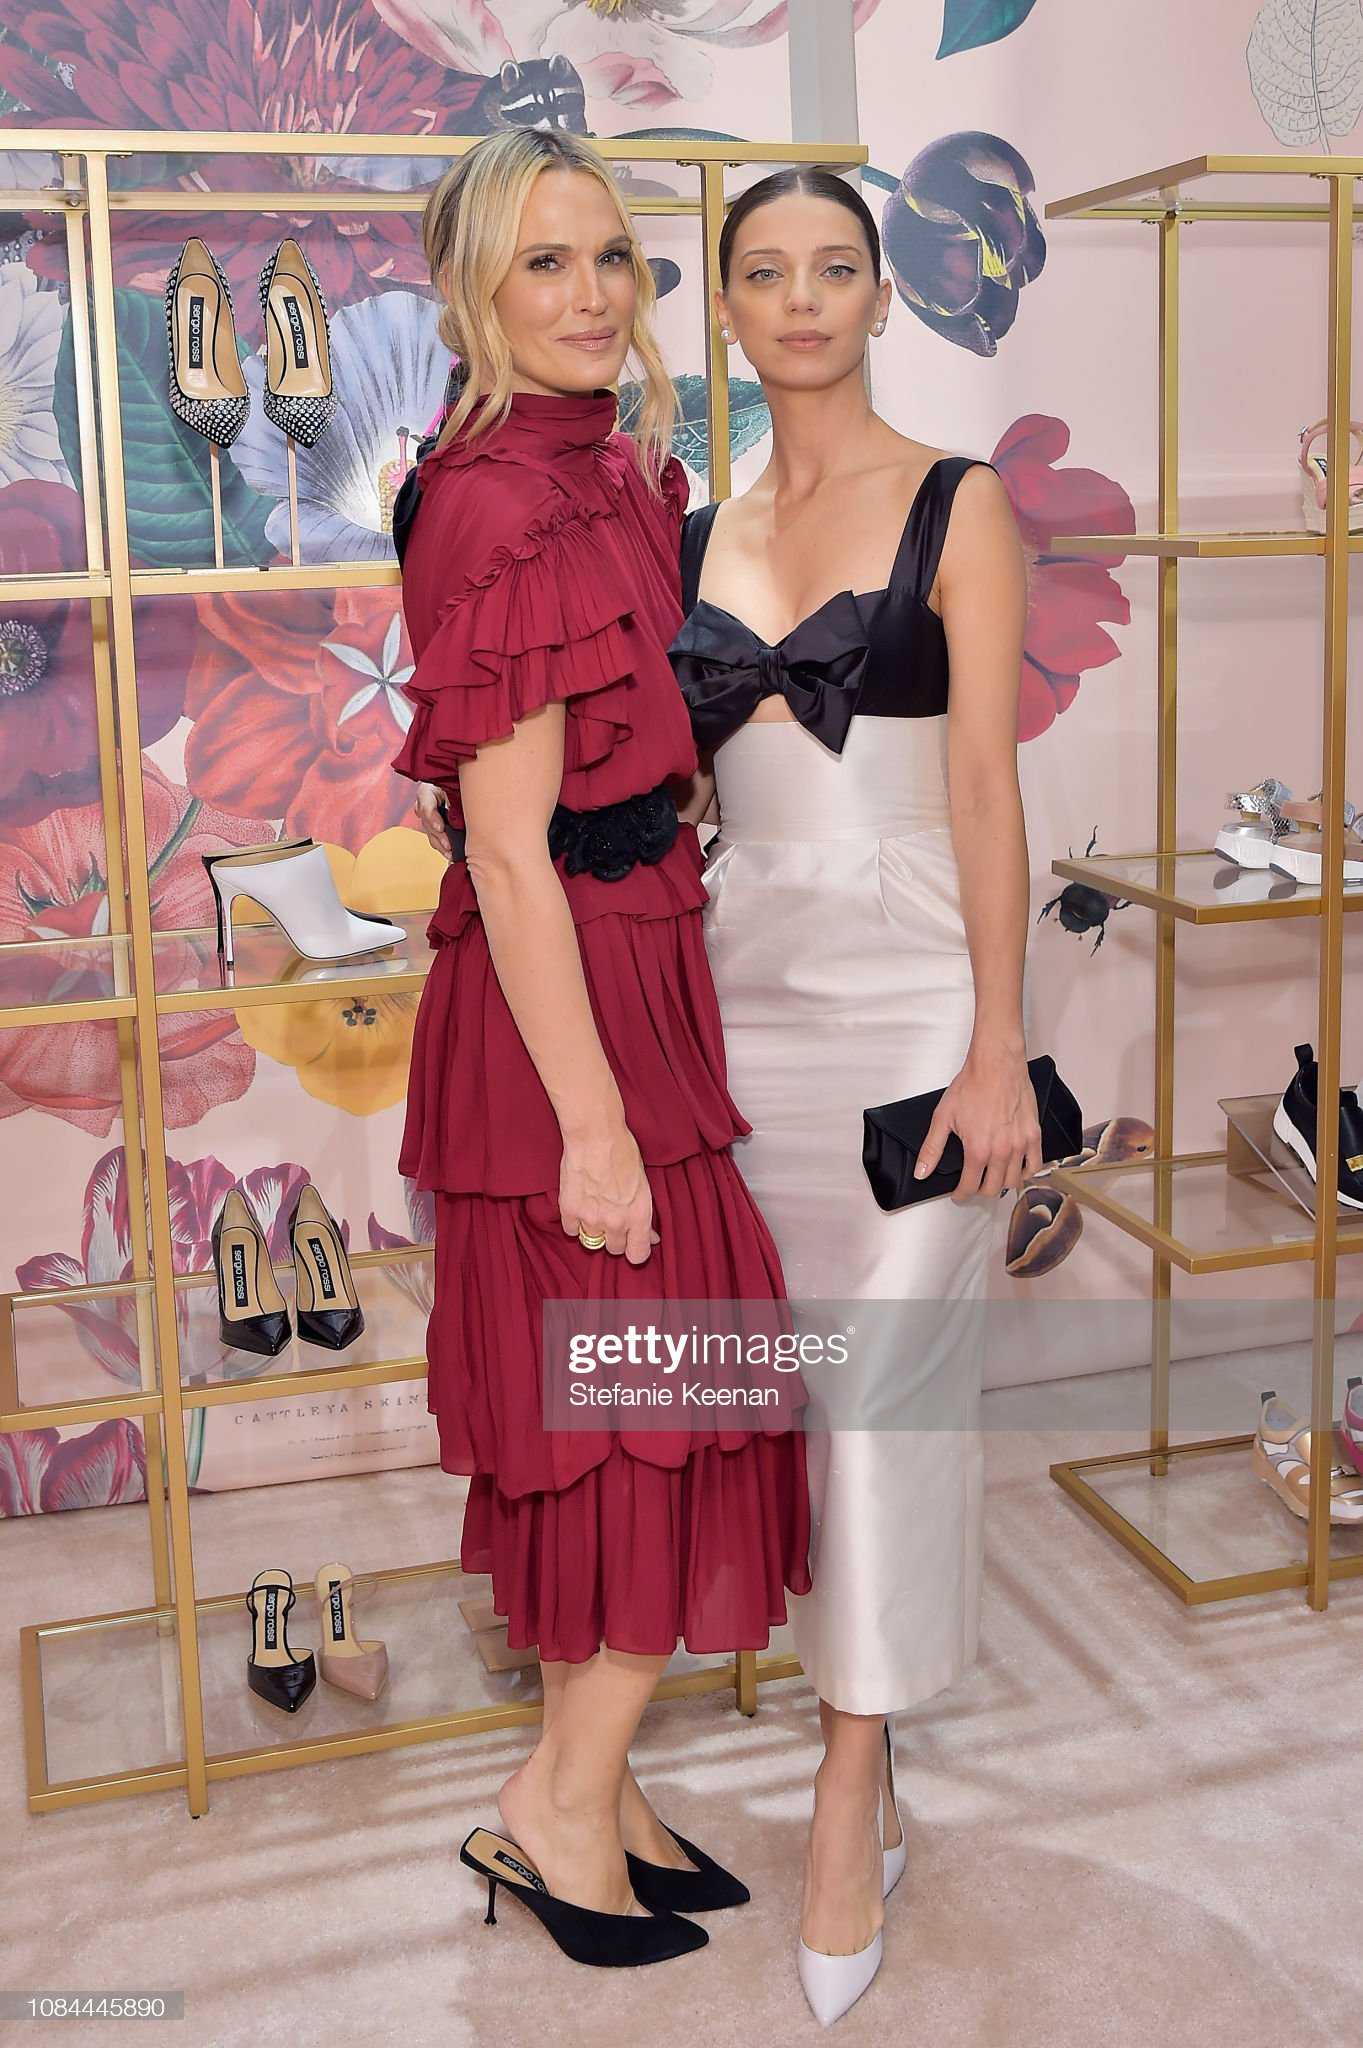 ¿Cuánto mide Angela Sarafyan? - Real height Molly-sims-and-angela-sarafyan-attend-sergio-rossi-elizabeth-stewart-picture-id1084445890?s=2048x2048